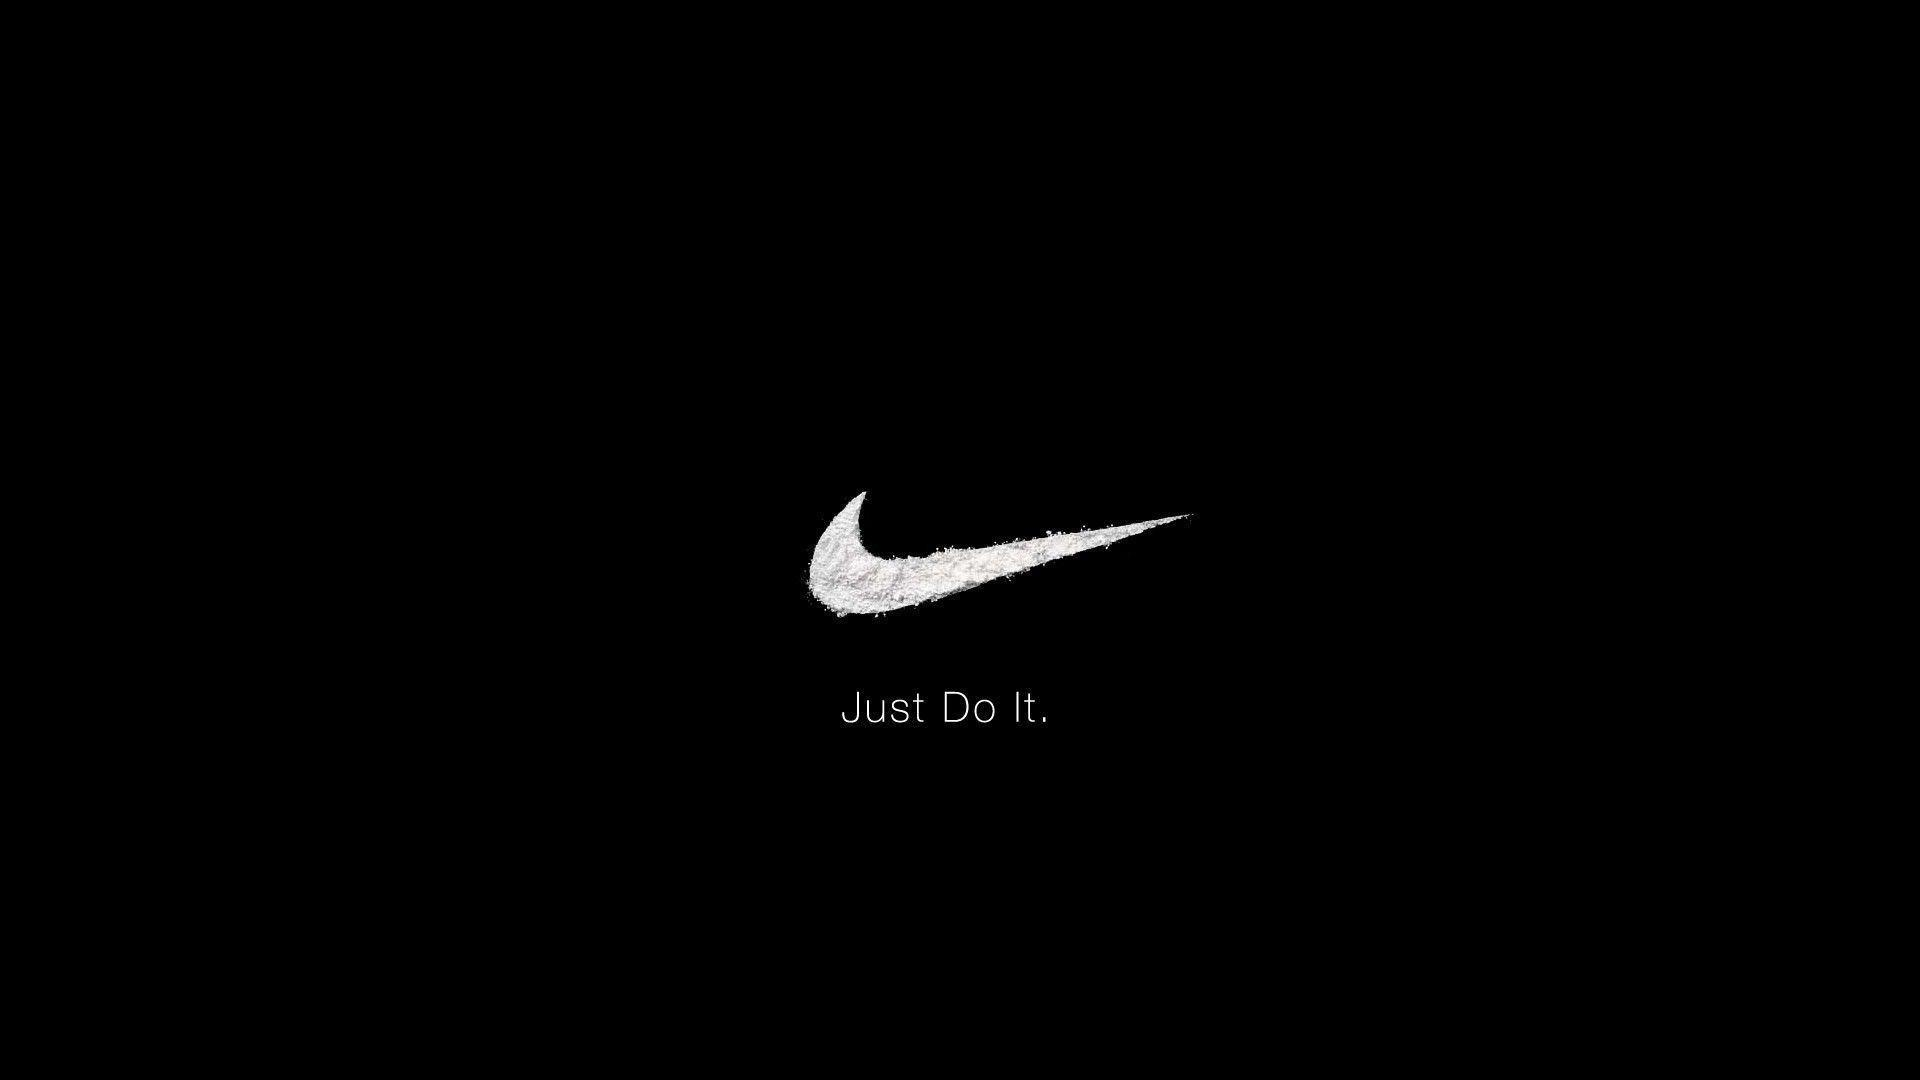 nike just do it wallpaper - photo #13